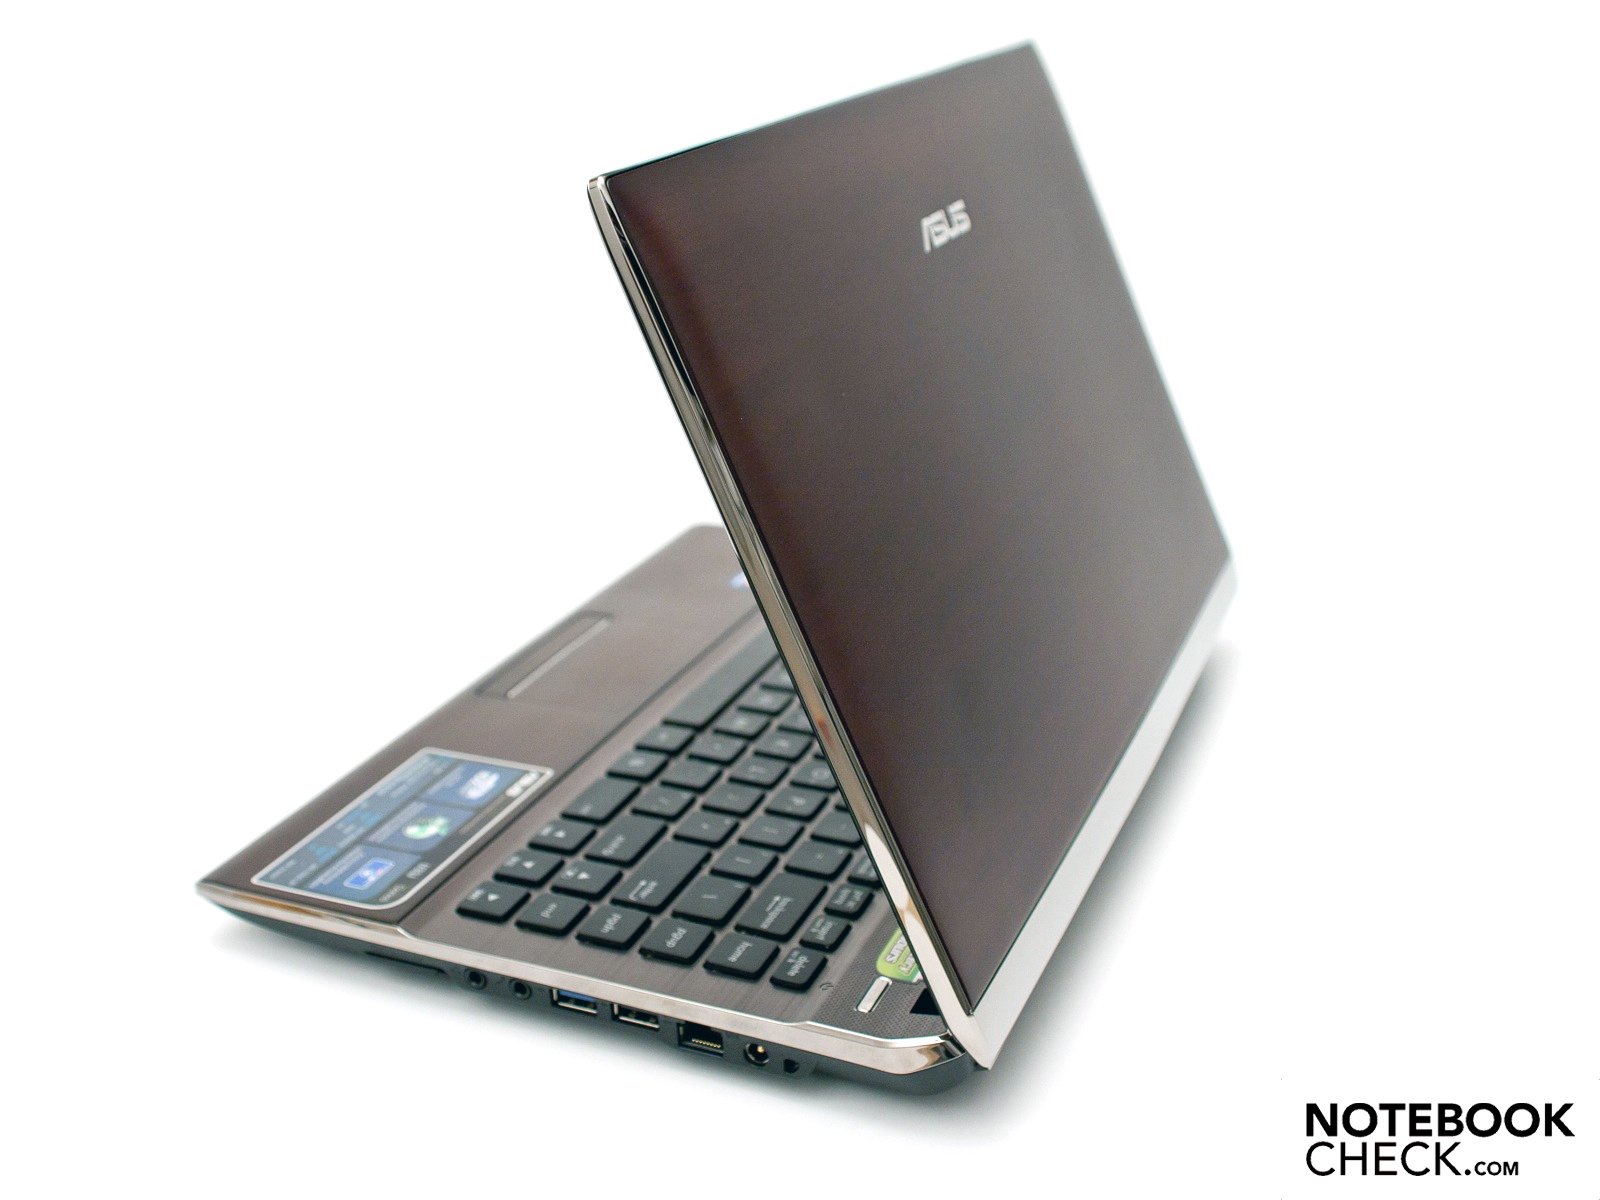 ASUS U53JC NOTEBOOK MATRIX STORAGE DRIVER WINDOWS